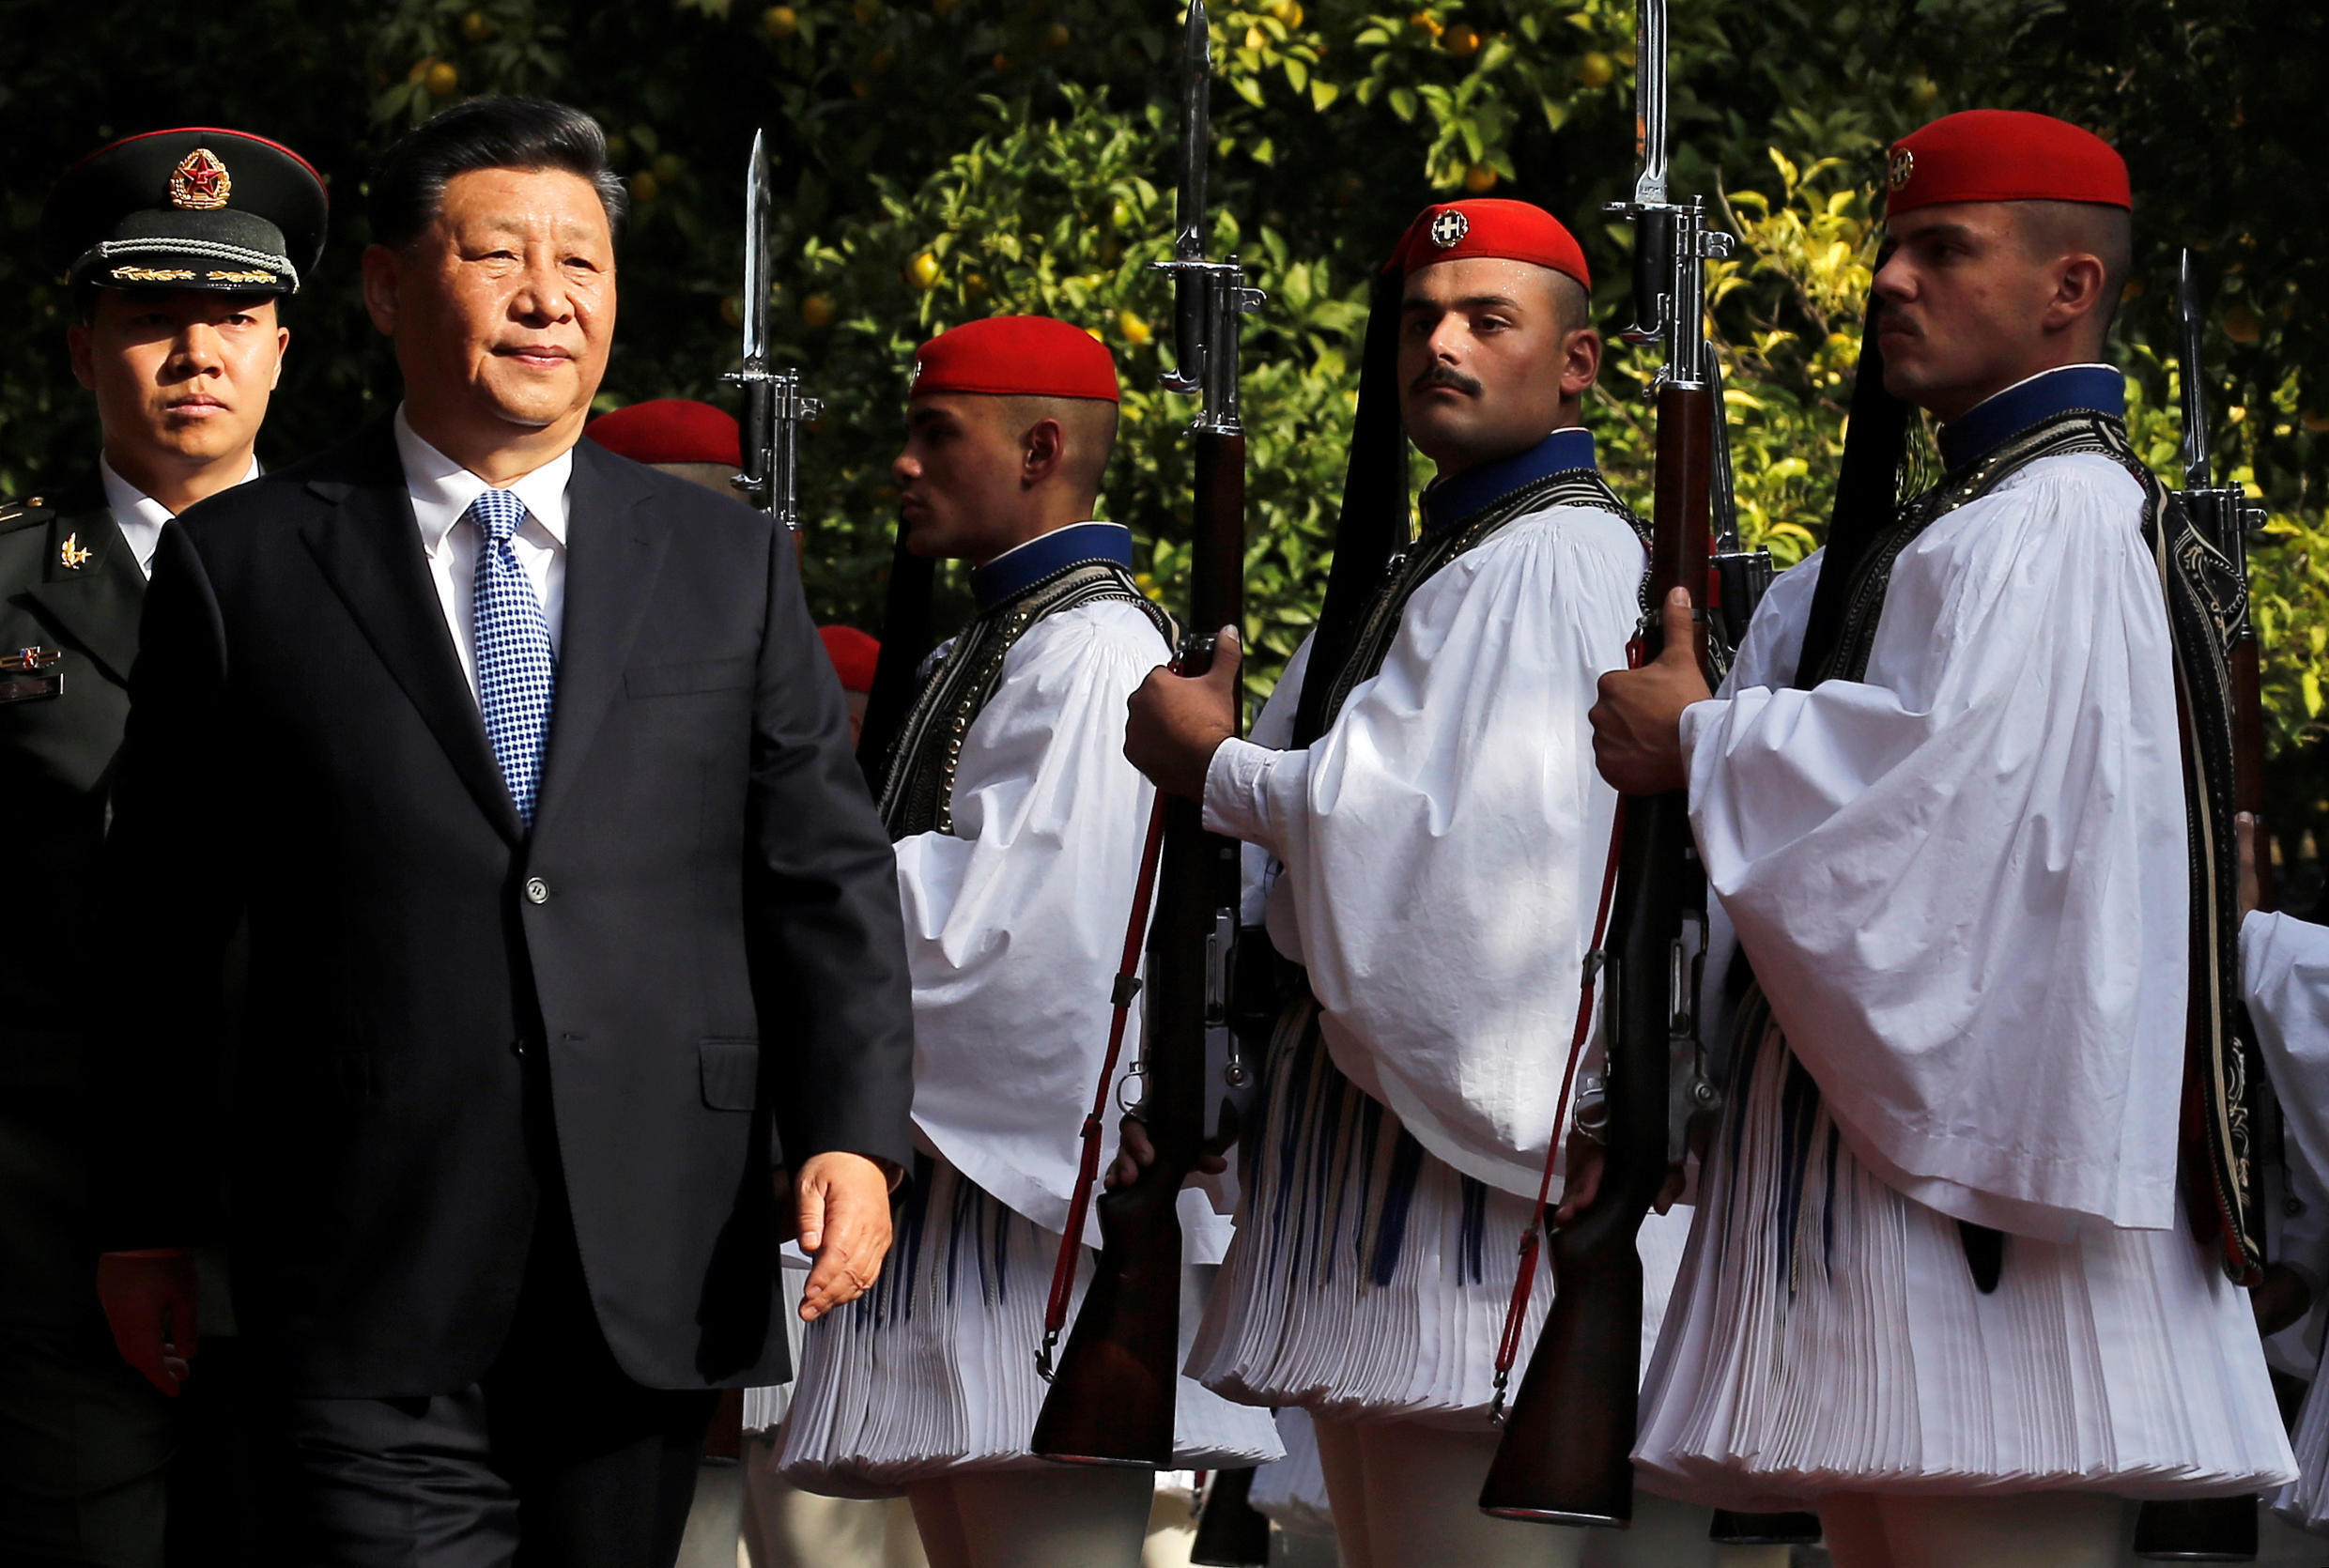 Chinese President Xi Jinping inspects a guard of honour during a guard of honour during a welcome ceremony in Athens, Greece, November 11, 2019.